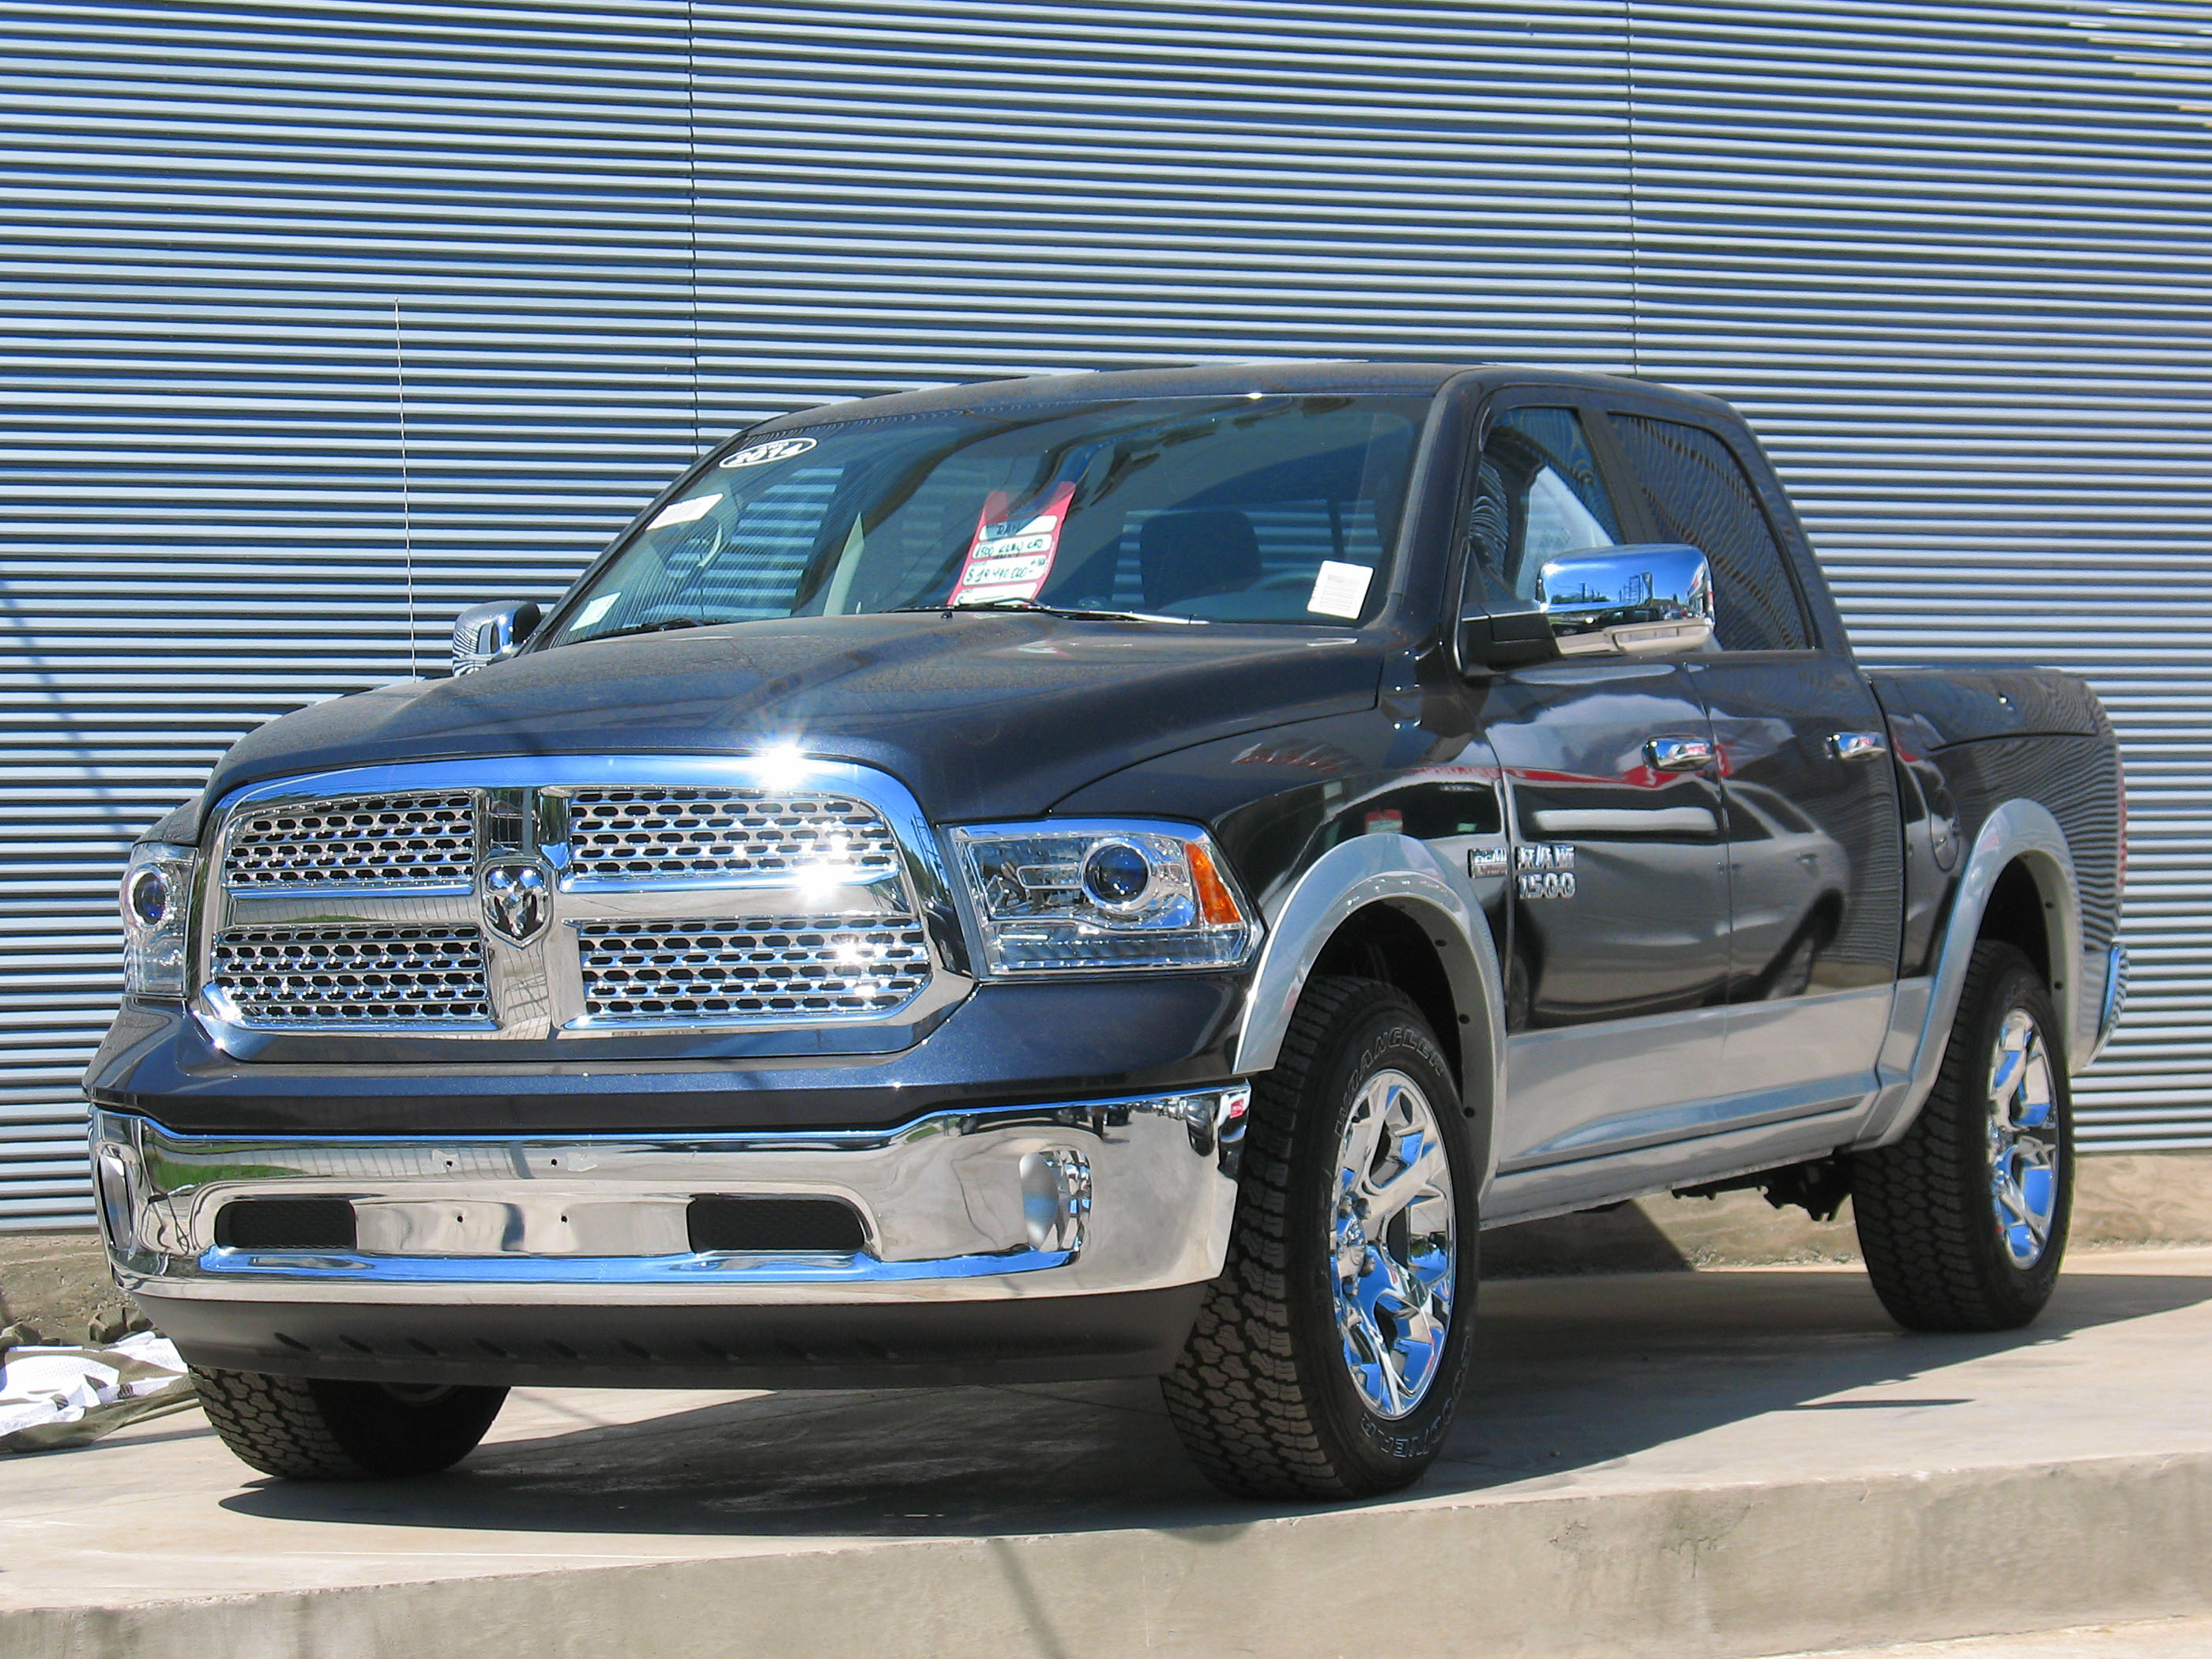 filedodge ram 1500 laramie quad cab 2014 11427220706jpg - Dodge Ram 1500 2014